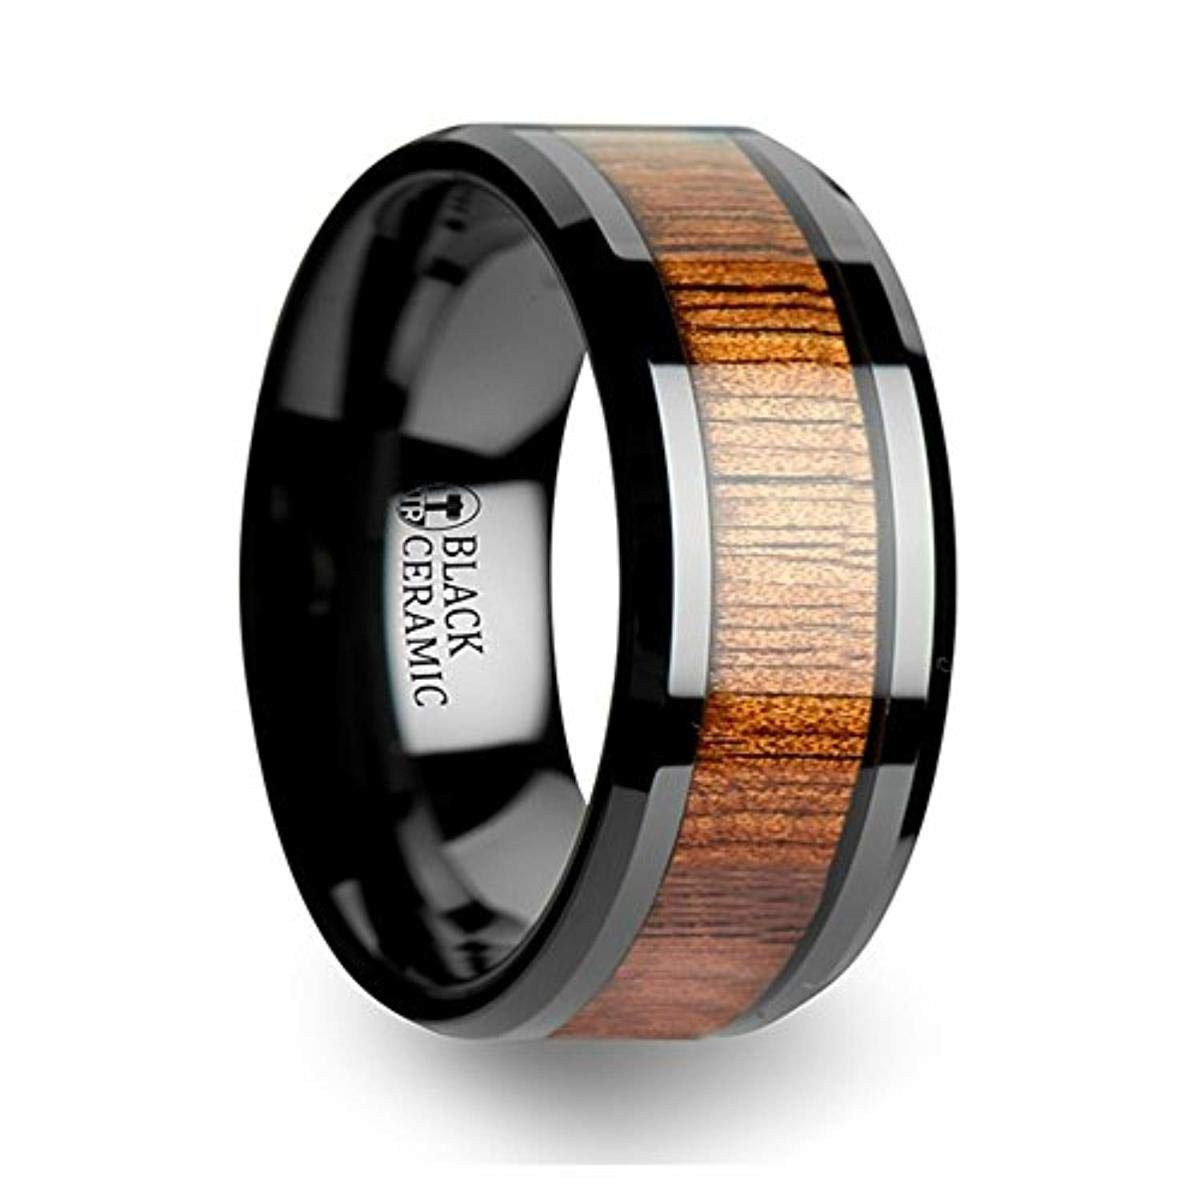 Thorsten Antonius Black Beveled Ceramic Ring with Black /& Red Carbon Fiber Center Inlay 4mm Wide Wedding Band from Roy Rose Jewelry